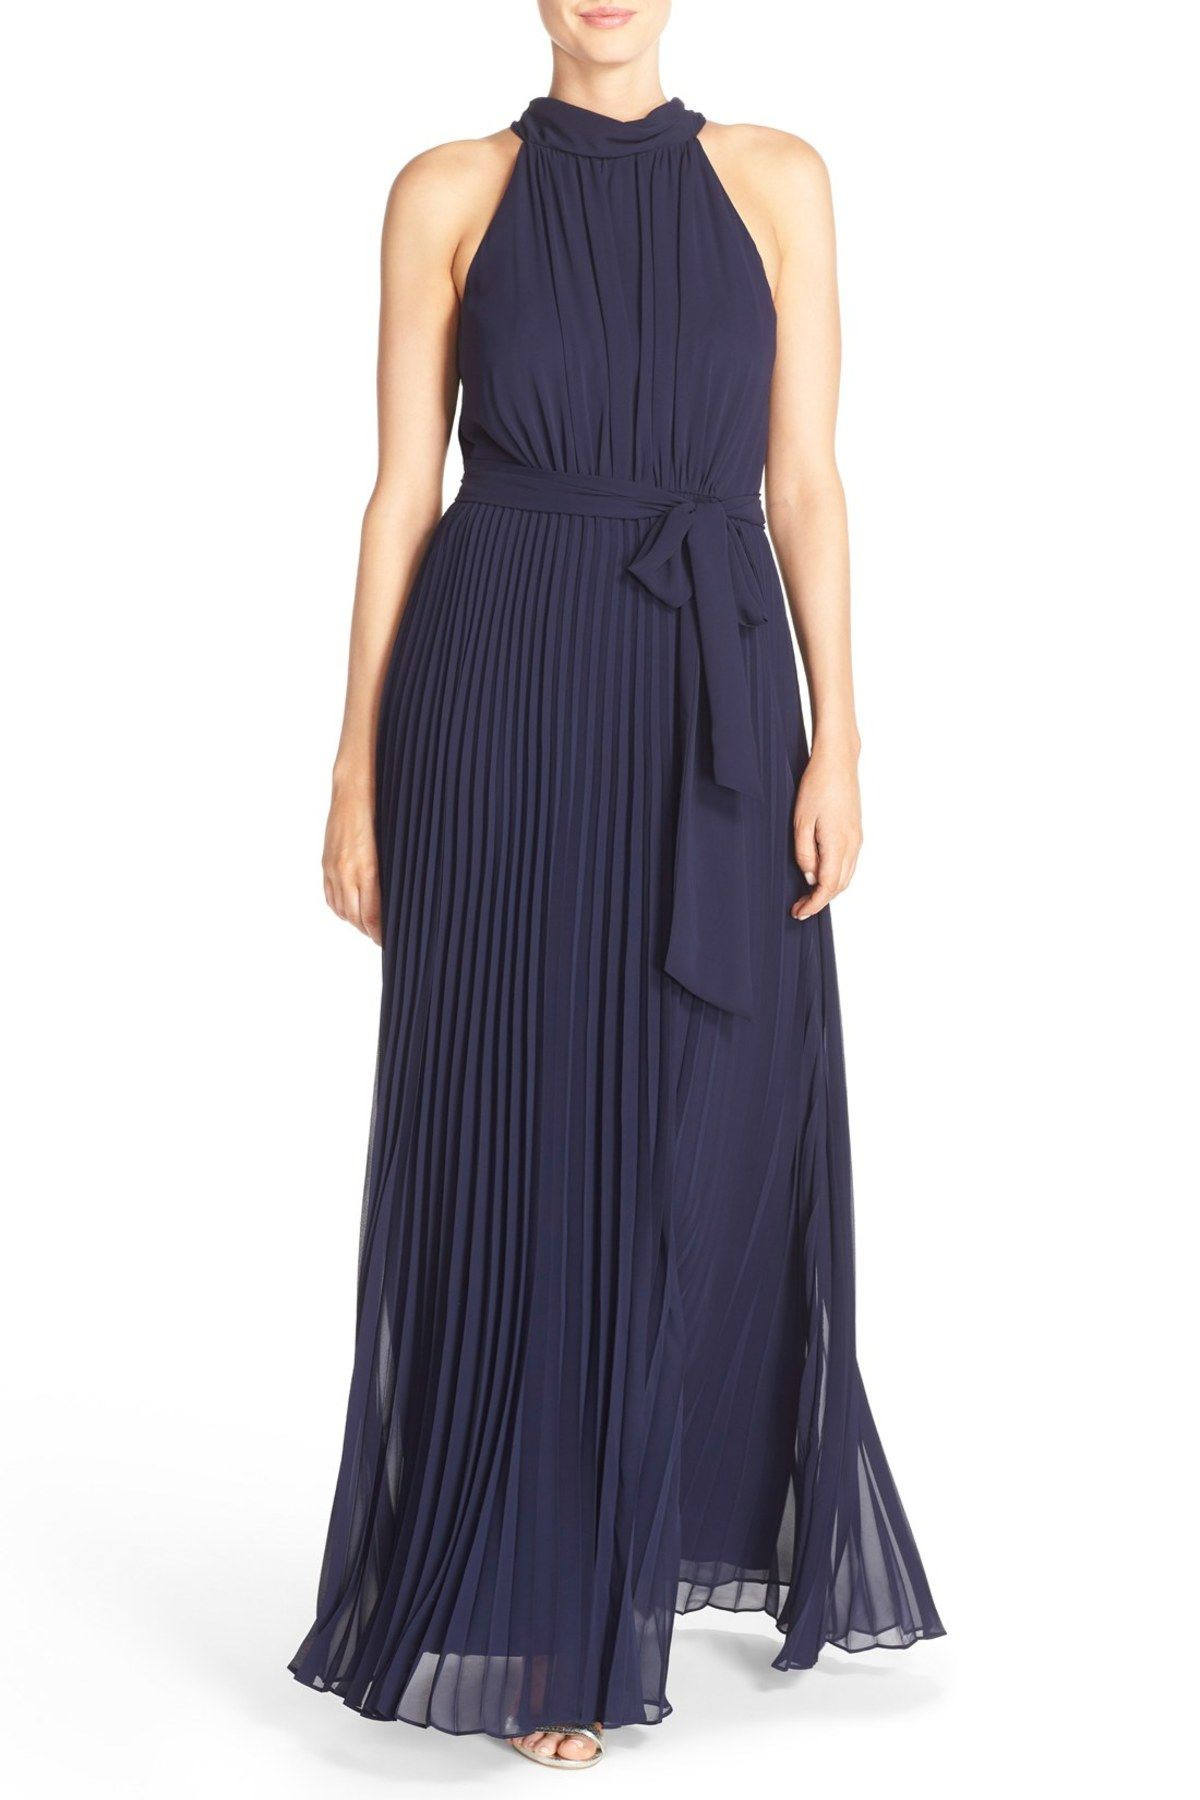 Eliza j pleated chiffon aline maxi dress maxi dresses free